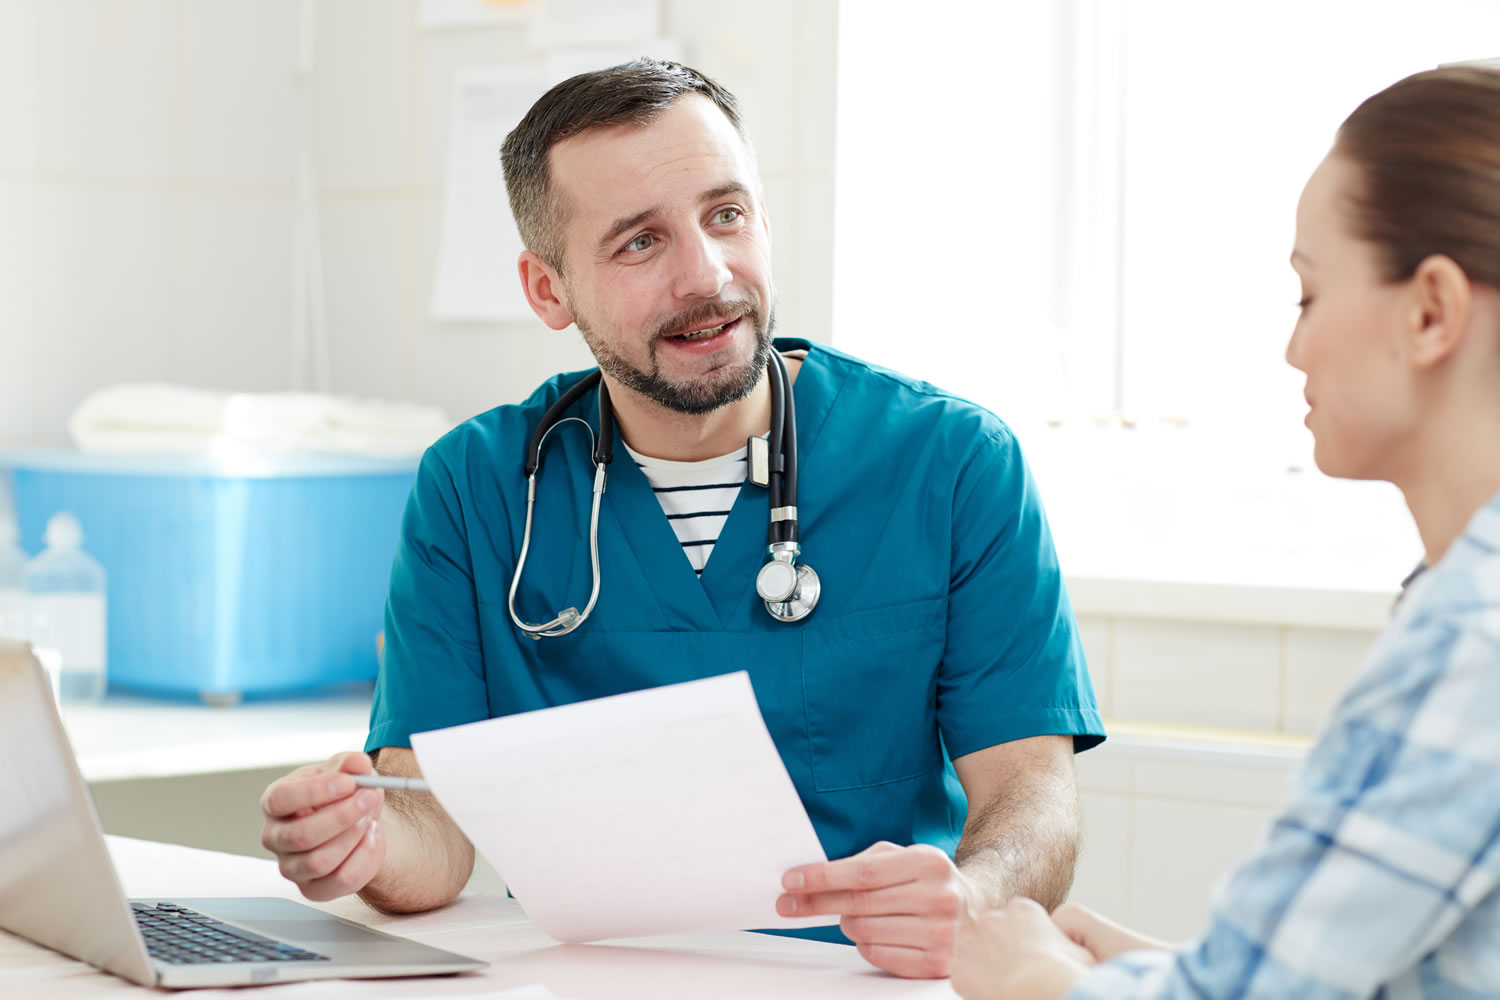 Outpatient doctor and patient sitting down at table discussing paperwork